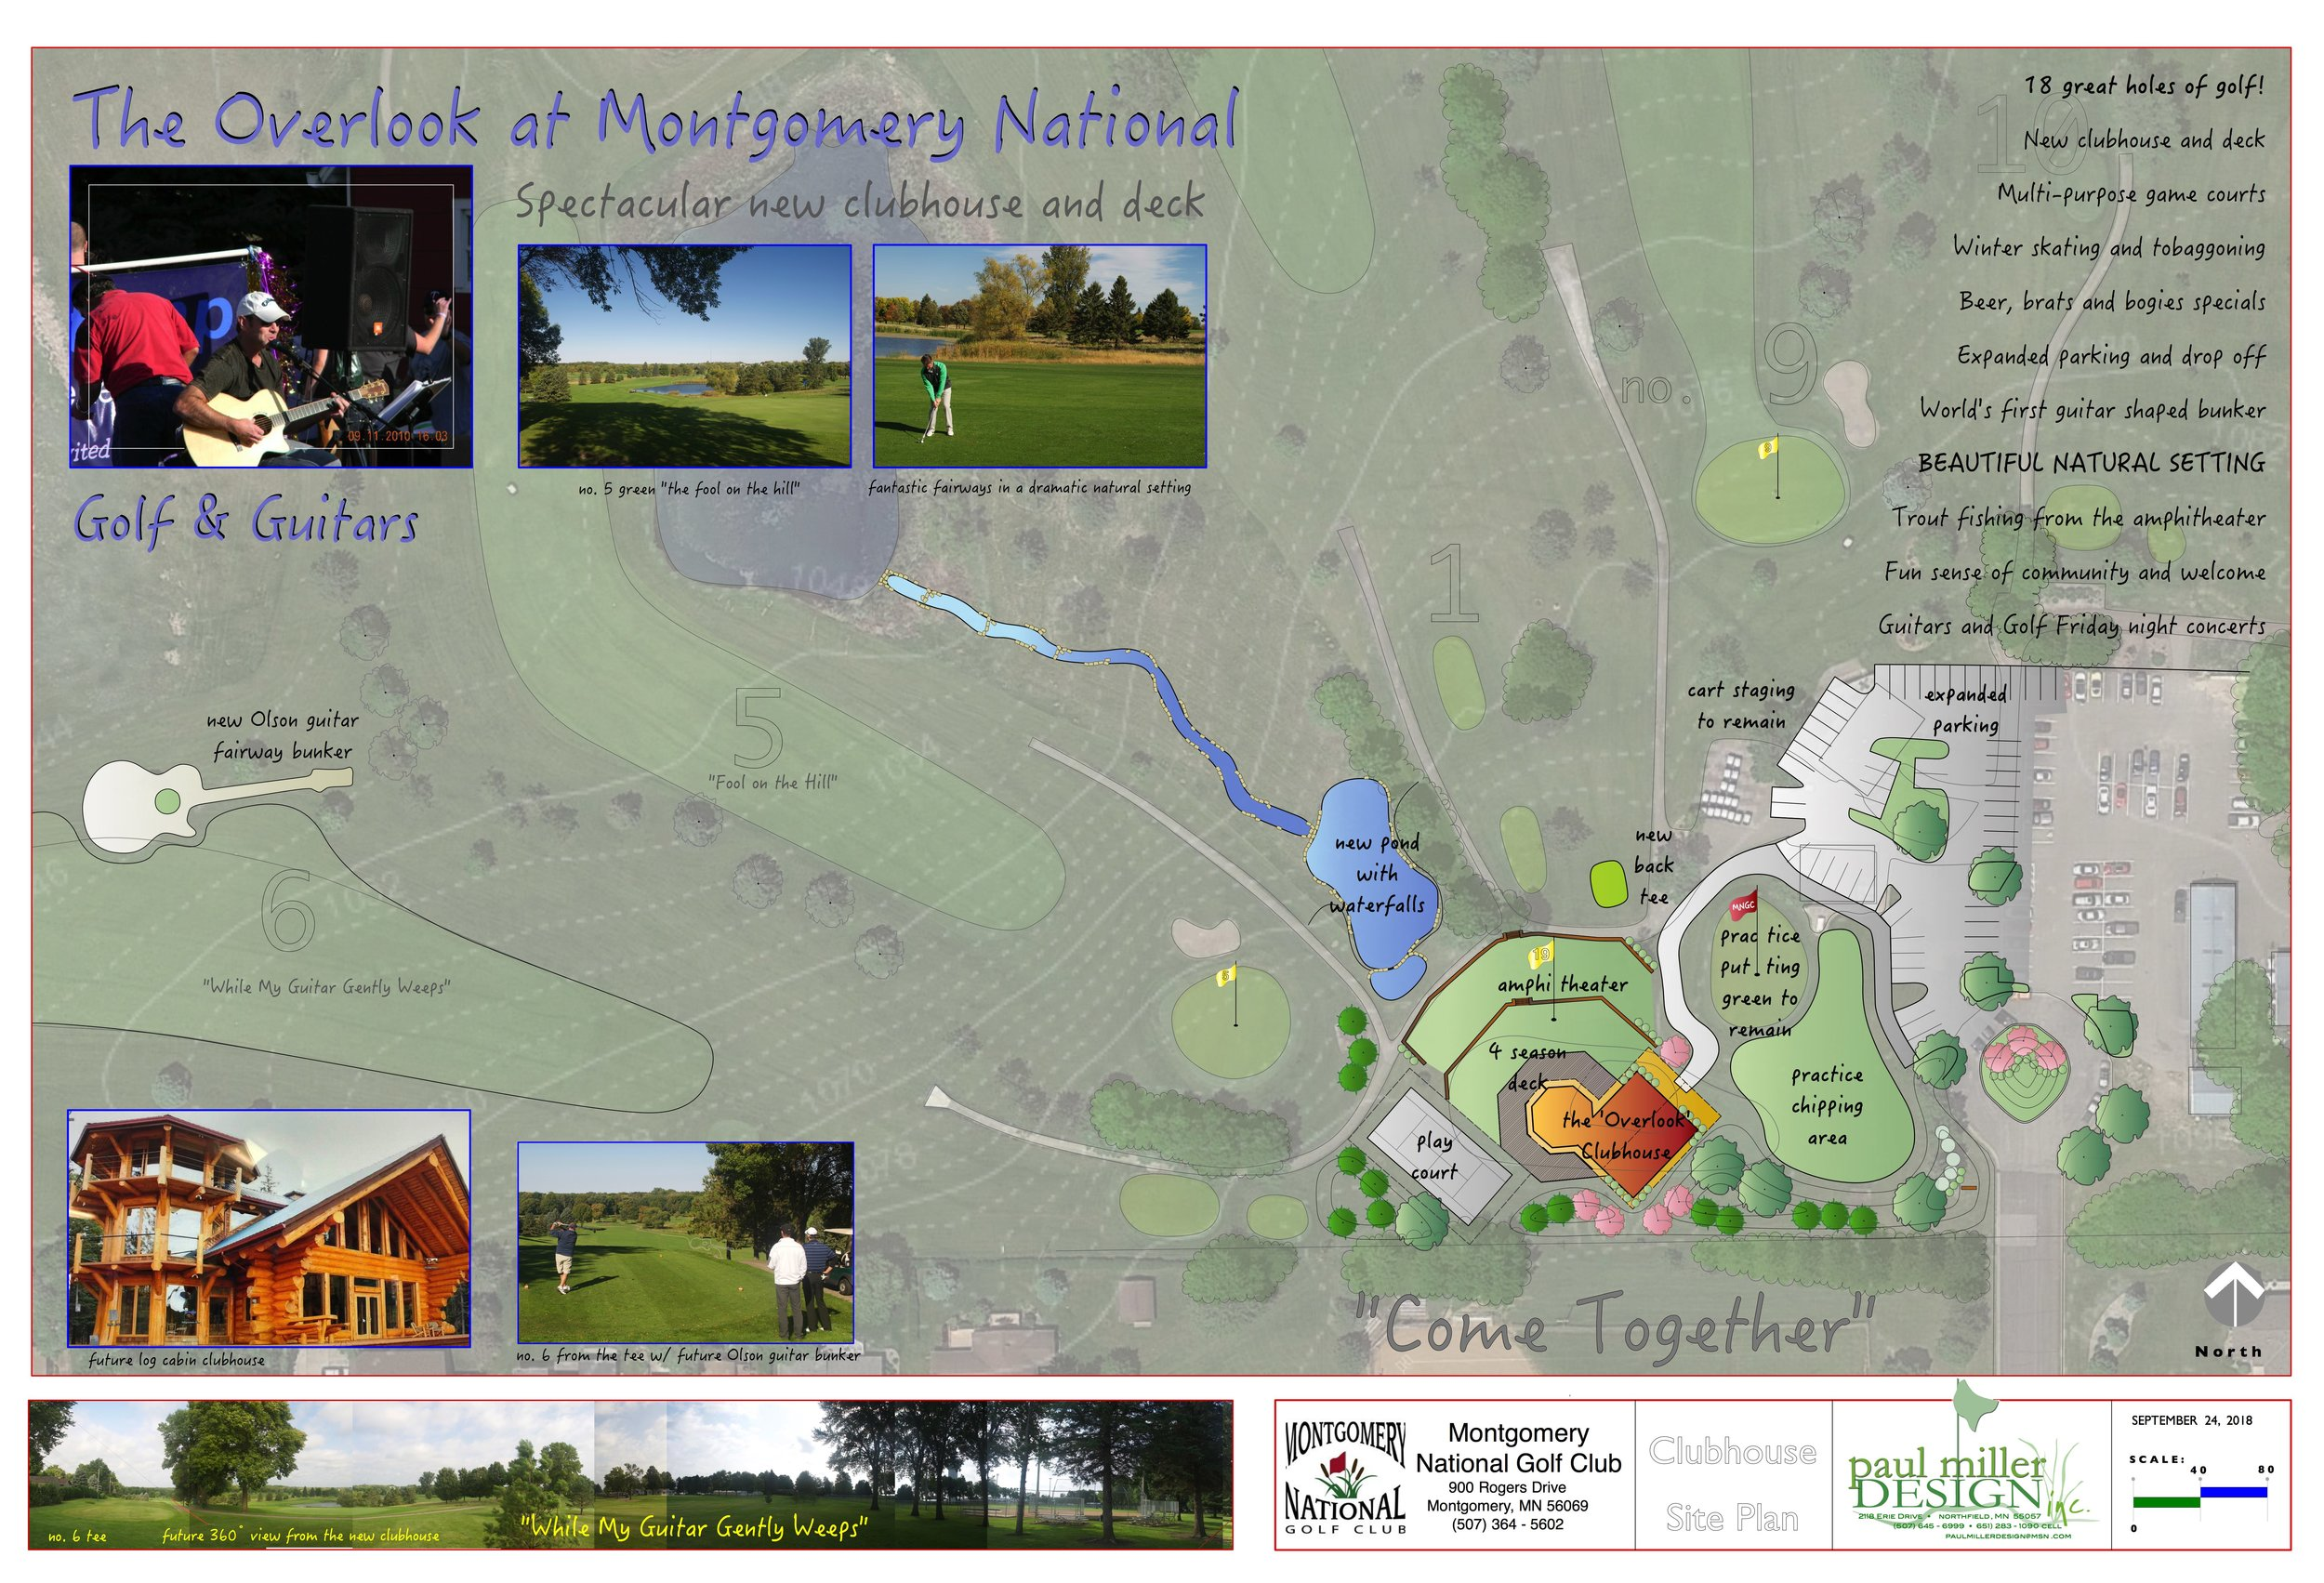 We want to be so much more than just a great golf course. We want to be the place you enjoy spending time with family and friends. Plans are underway for a spectacular new clubhouse, amphitheater, multi-purpose game courts and more!